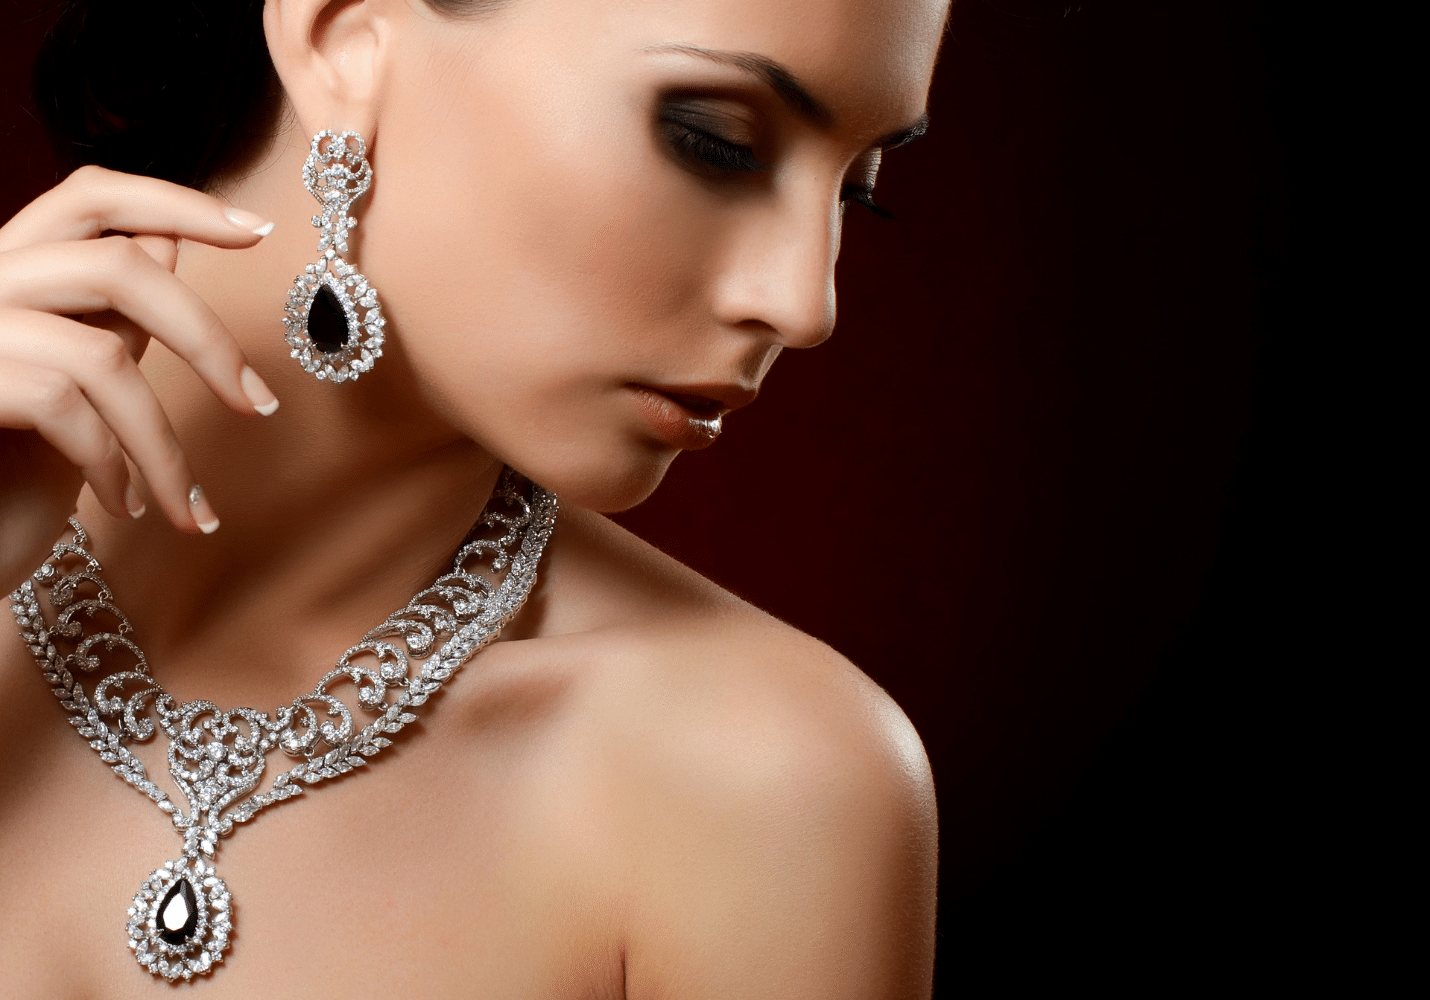 Specialist Jewellery Designers Continue Age-Old Trends